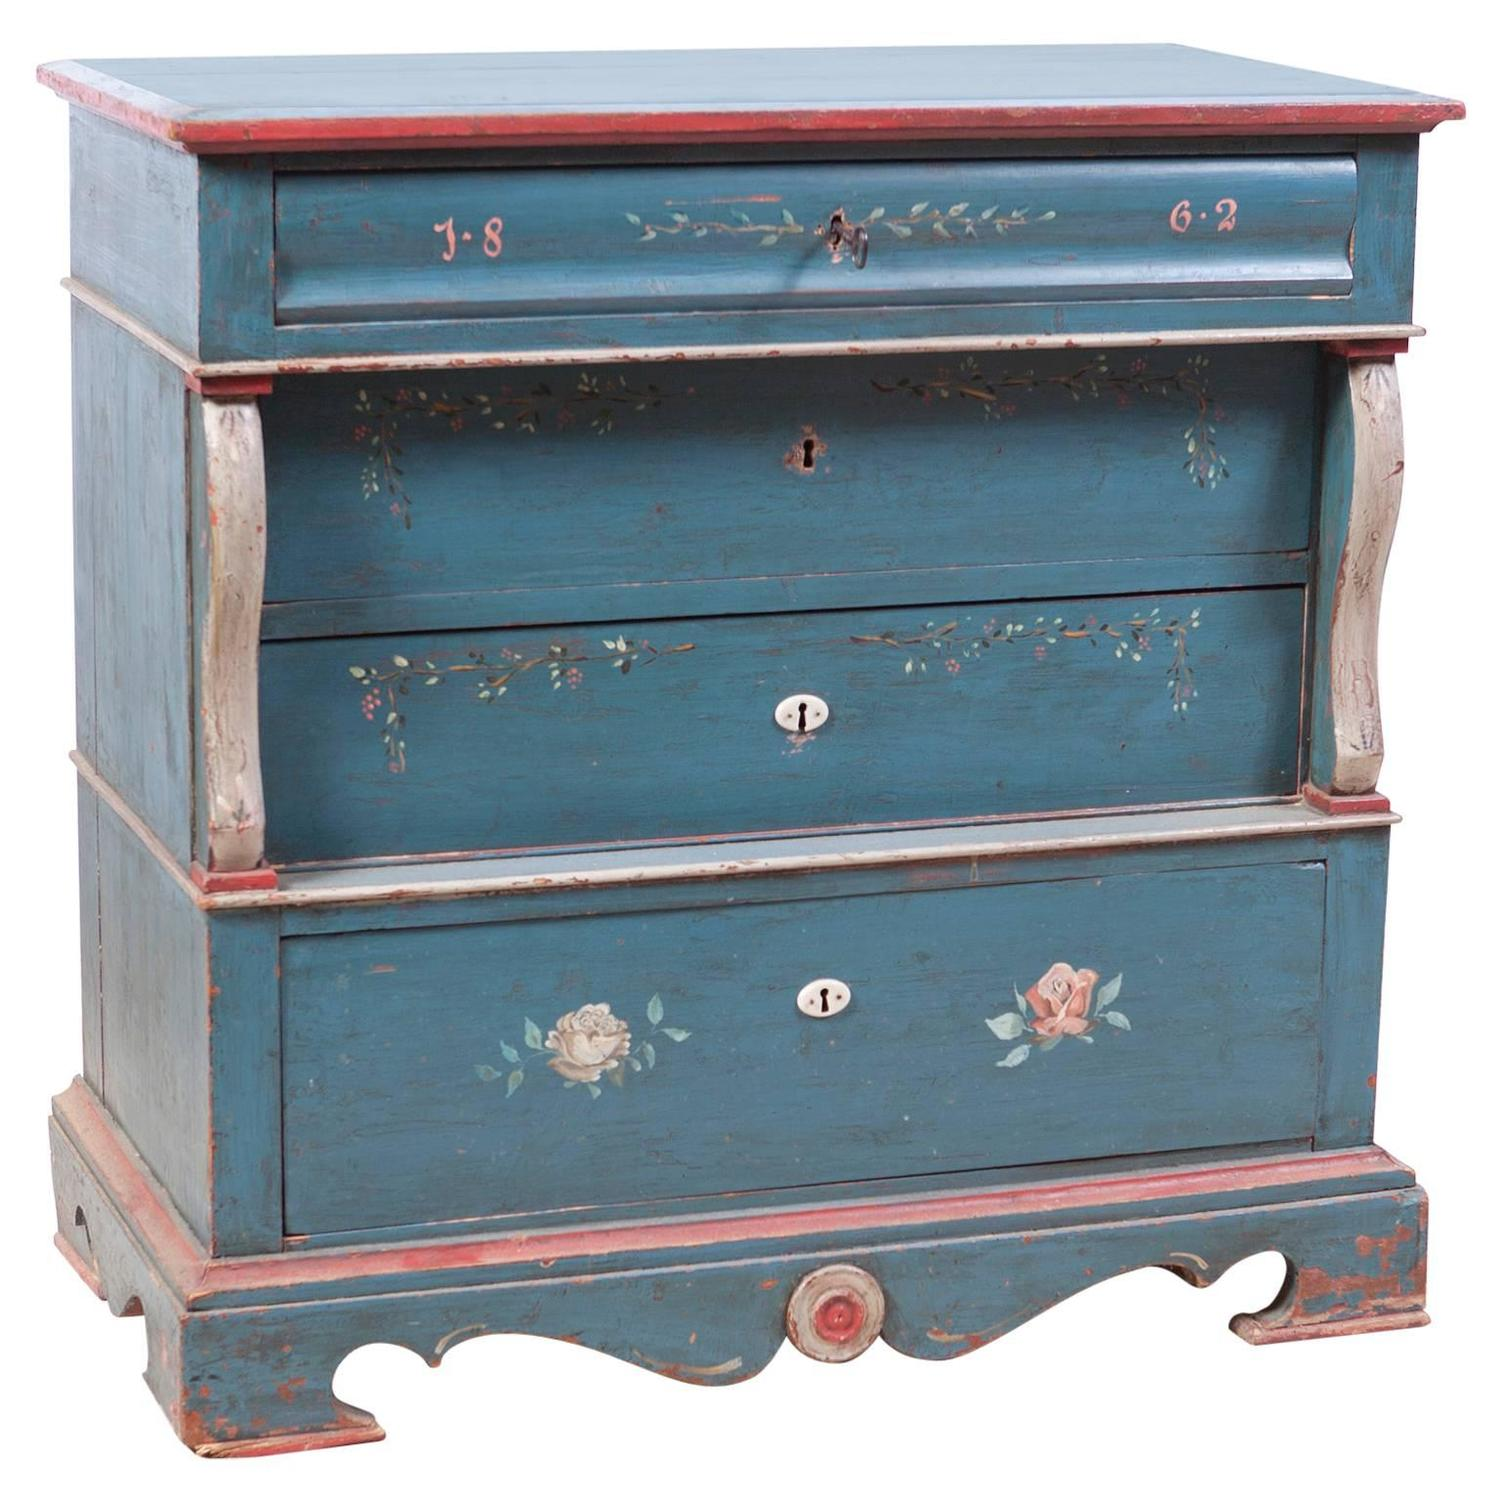 Antique Scandinavian Wedding Chest with Blue Paint and Pink Flowers  Dated  1862. Painted Bridal Chest of Drawers  c  1790   Bonnin Ashley Antiques